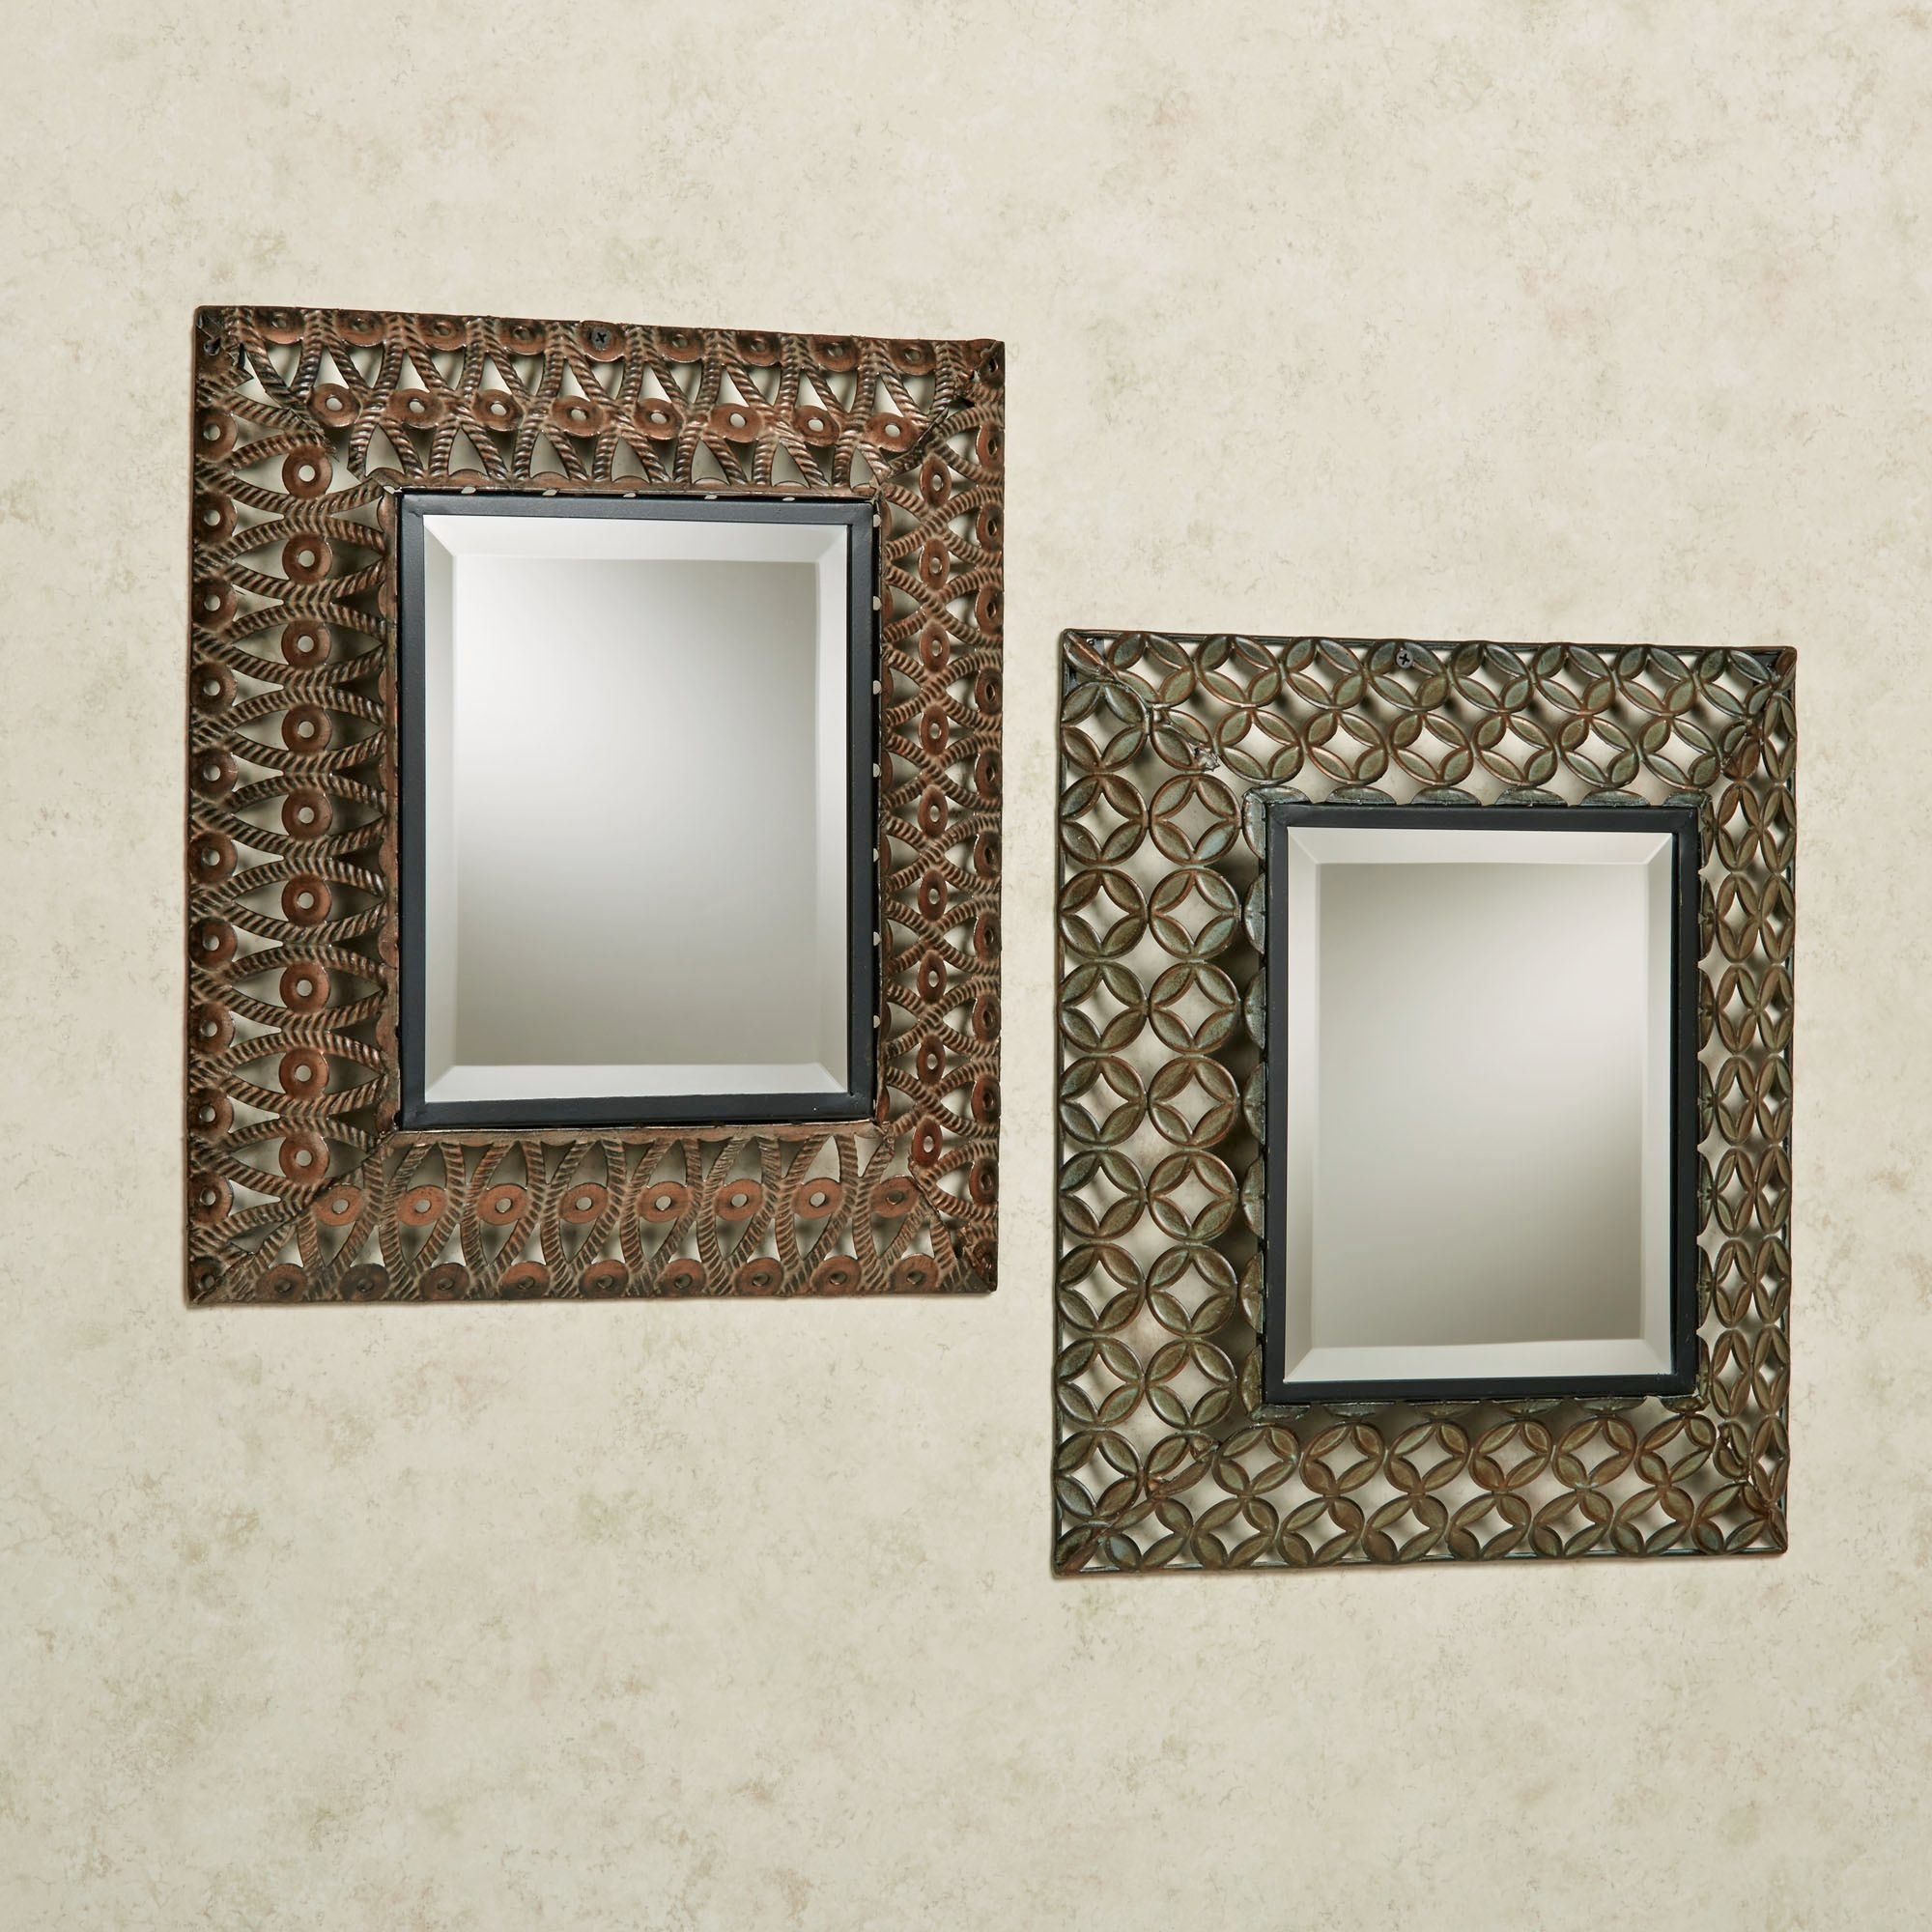 Cheap Decorative Wall Mirror Vintage Mirror Sets Wall Decor – Wall In Recent Mirror Sets Wall Accents (View 4 of 15)